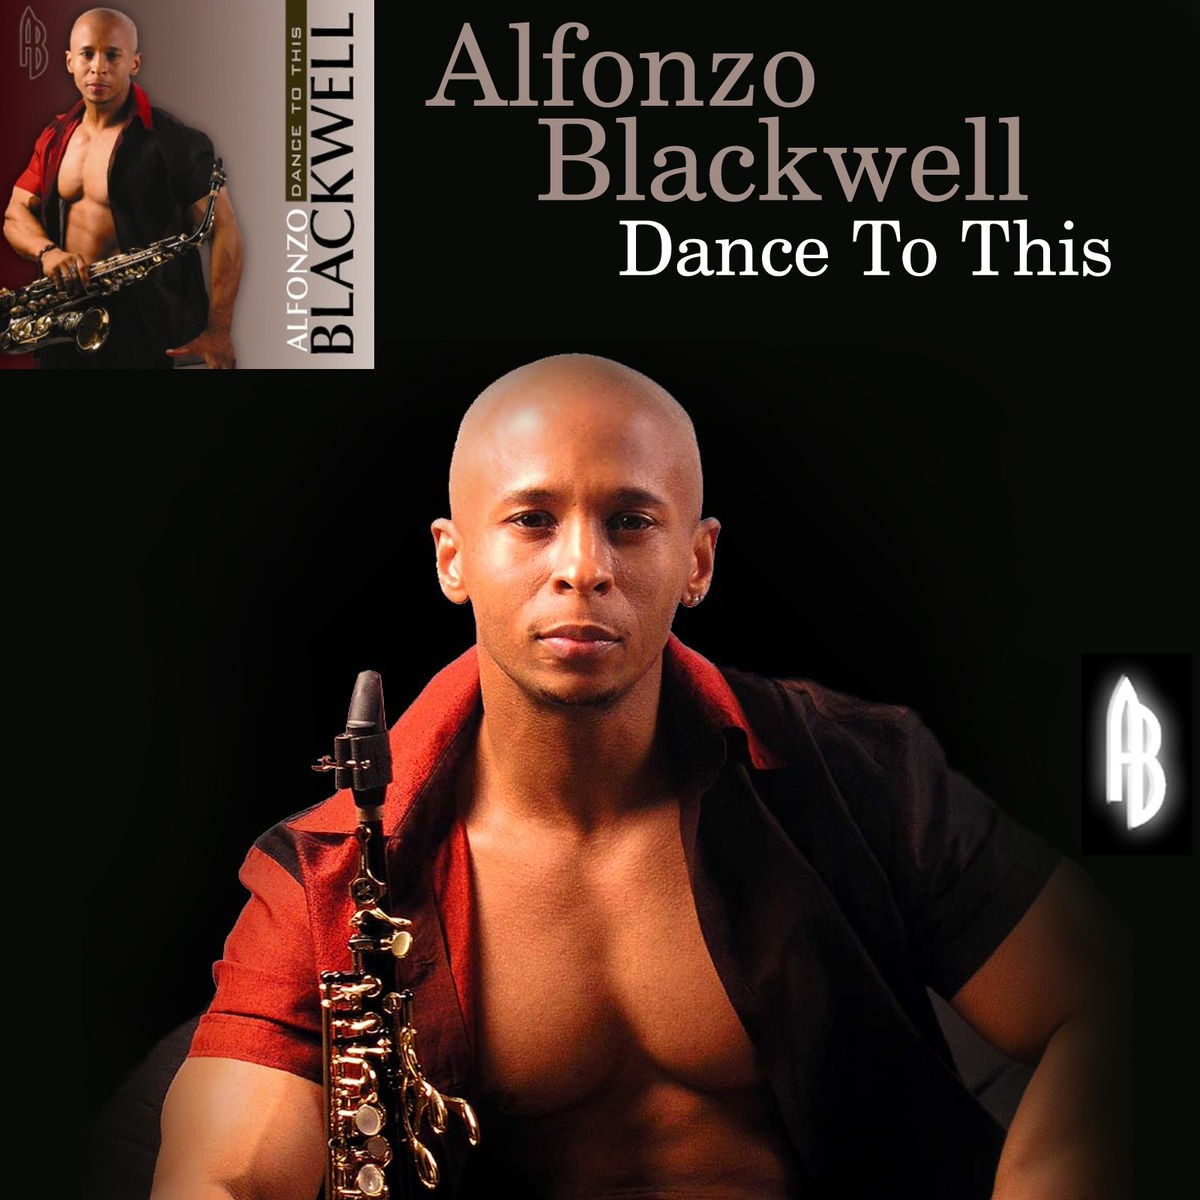 Alfonzo Blackwell - Dance to This CD - 894826002016